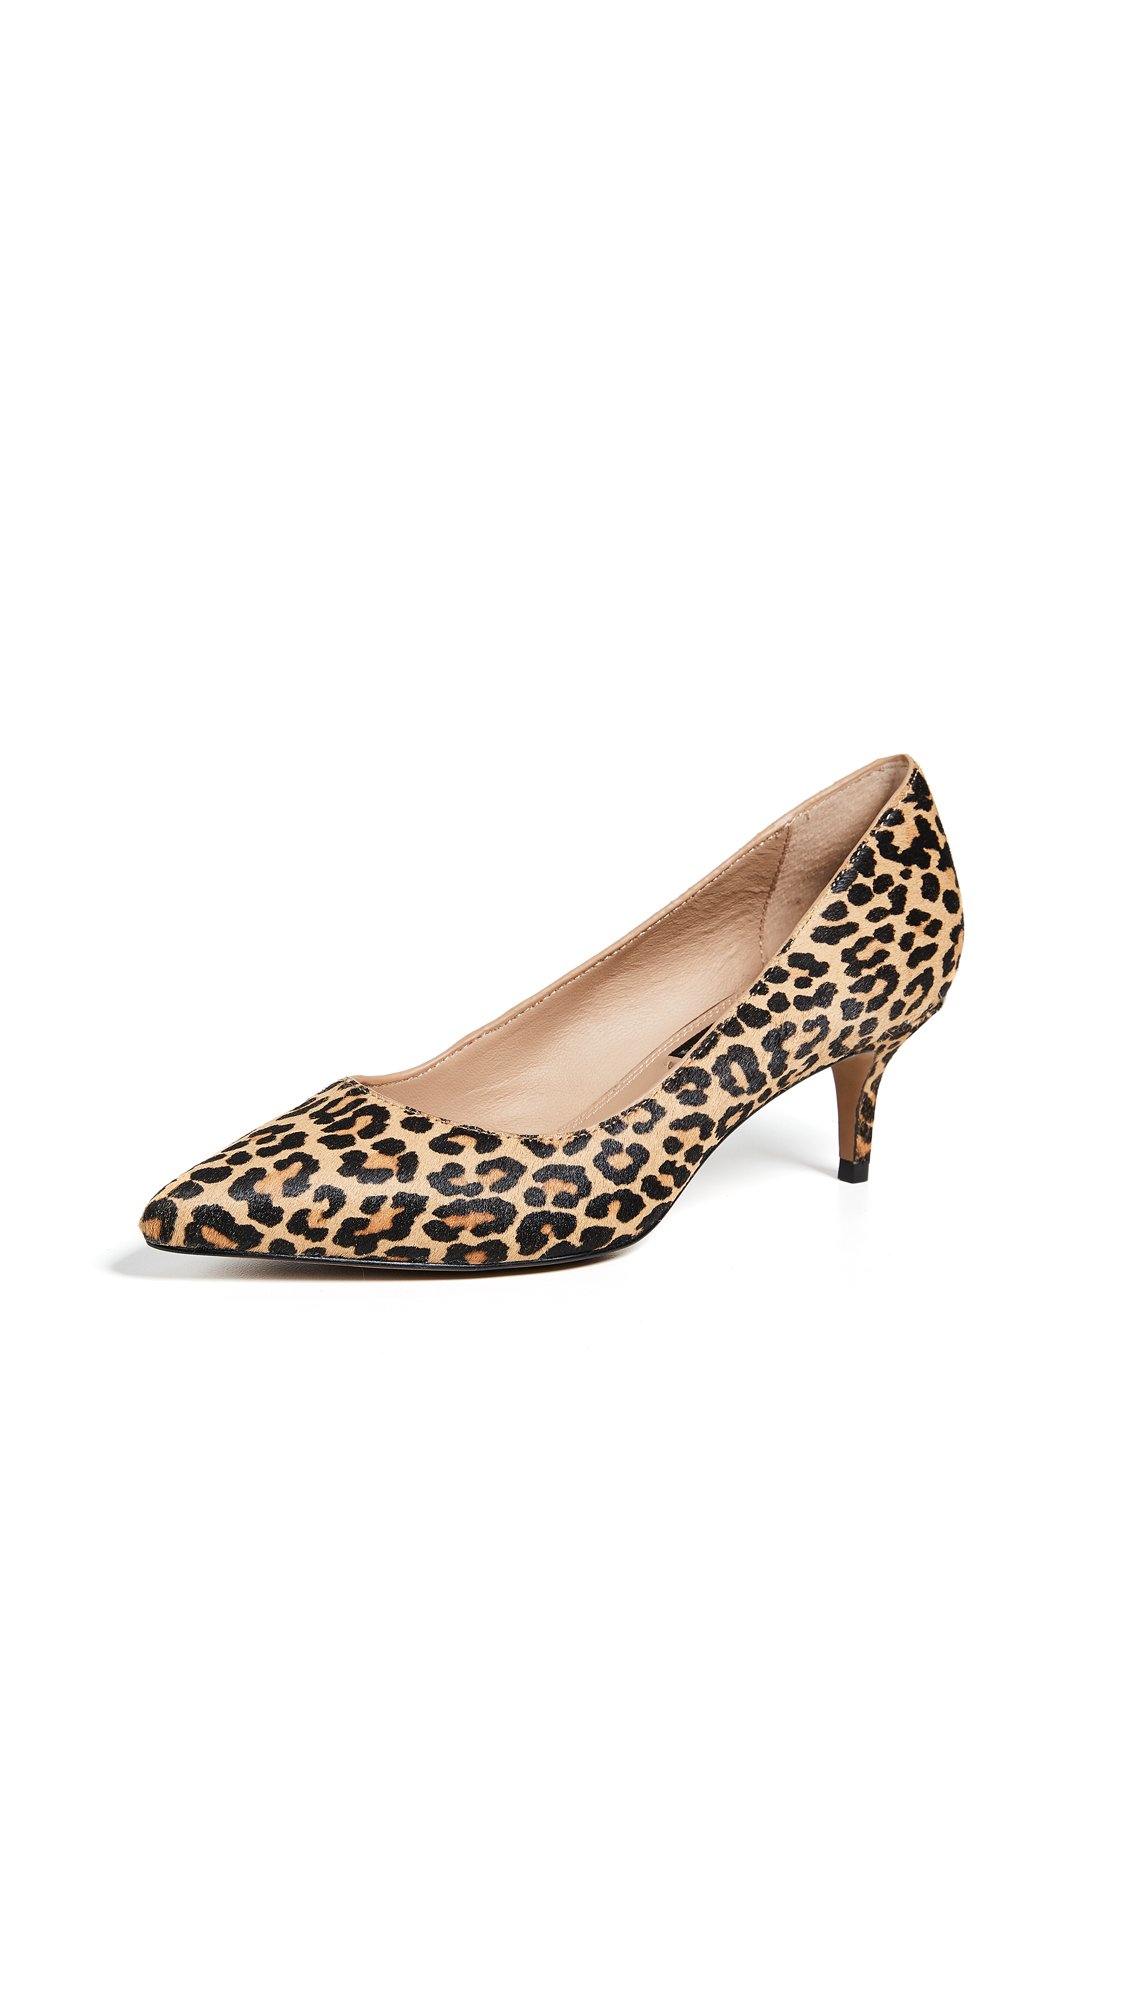 STEVEN KAVA L PUMPS